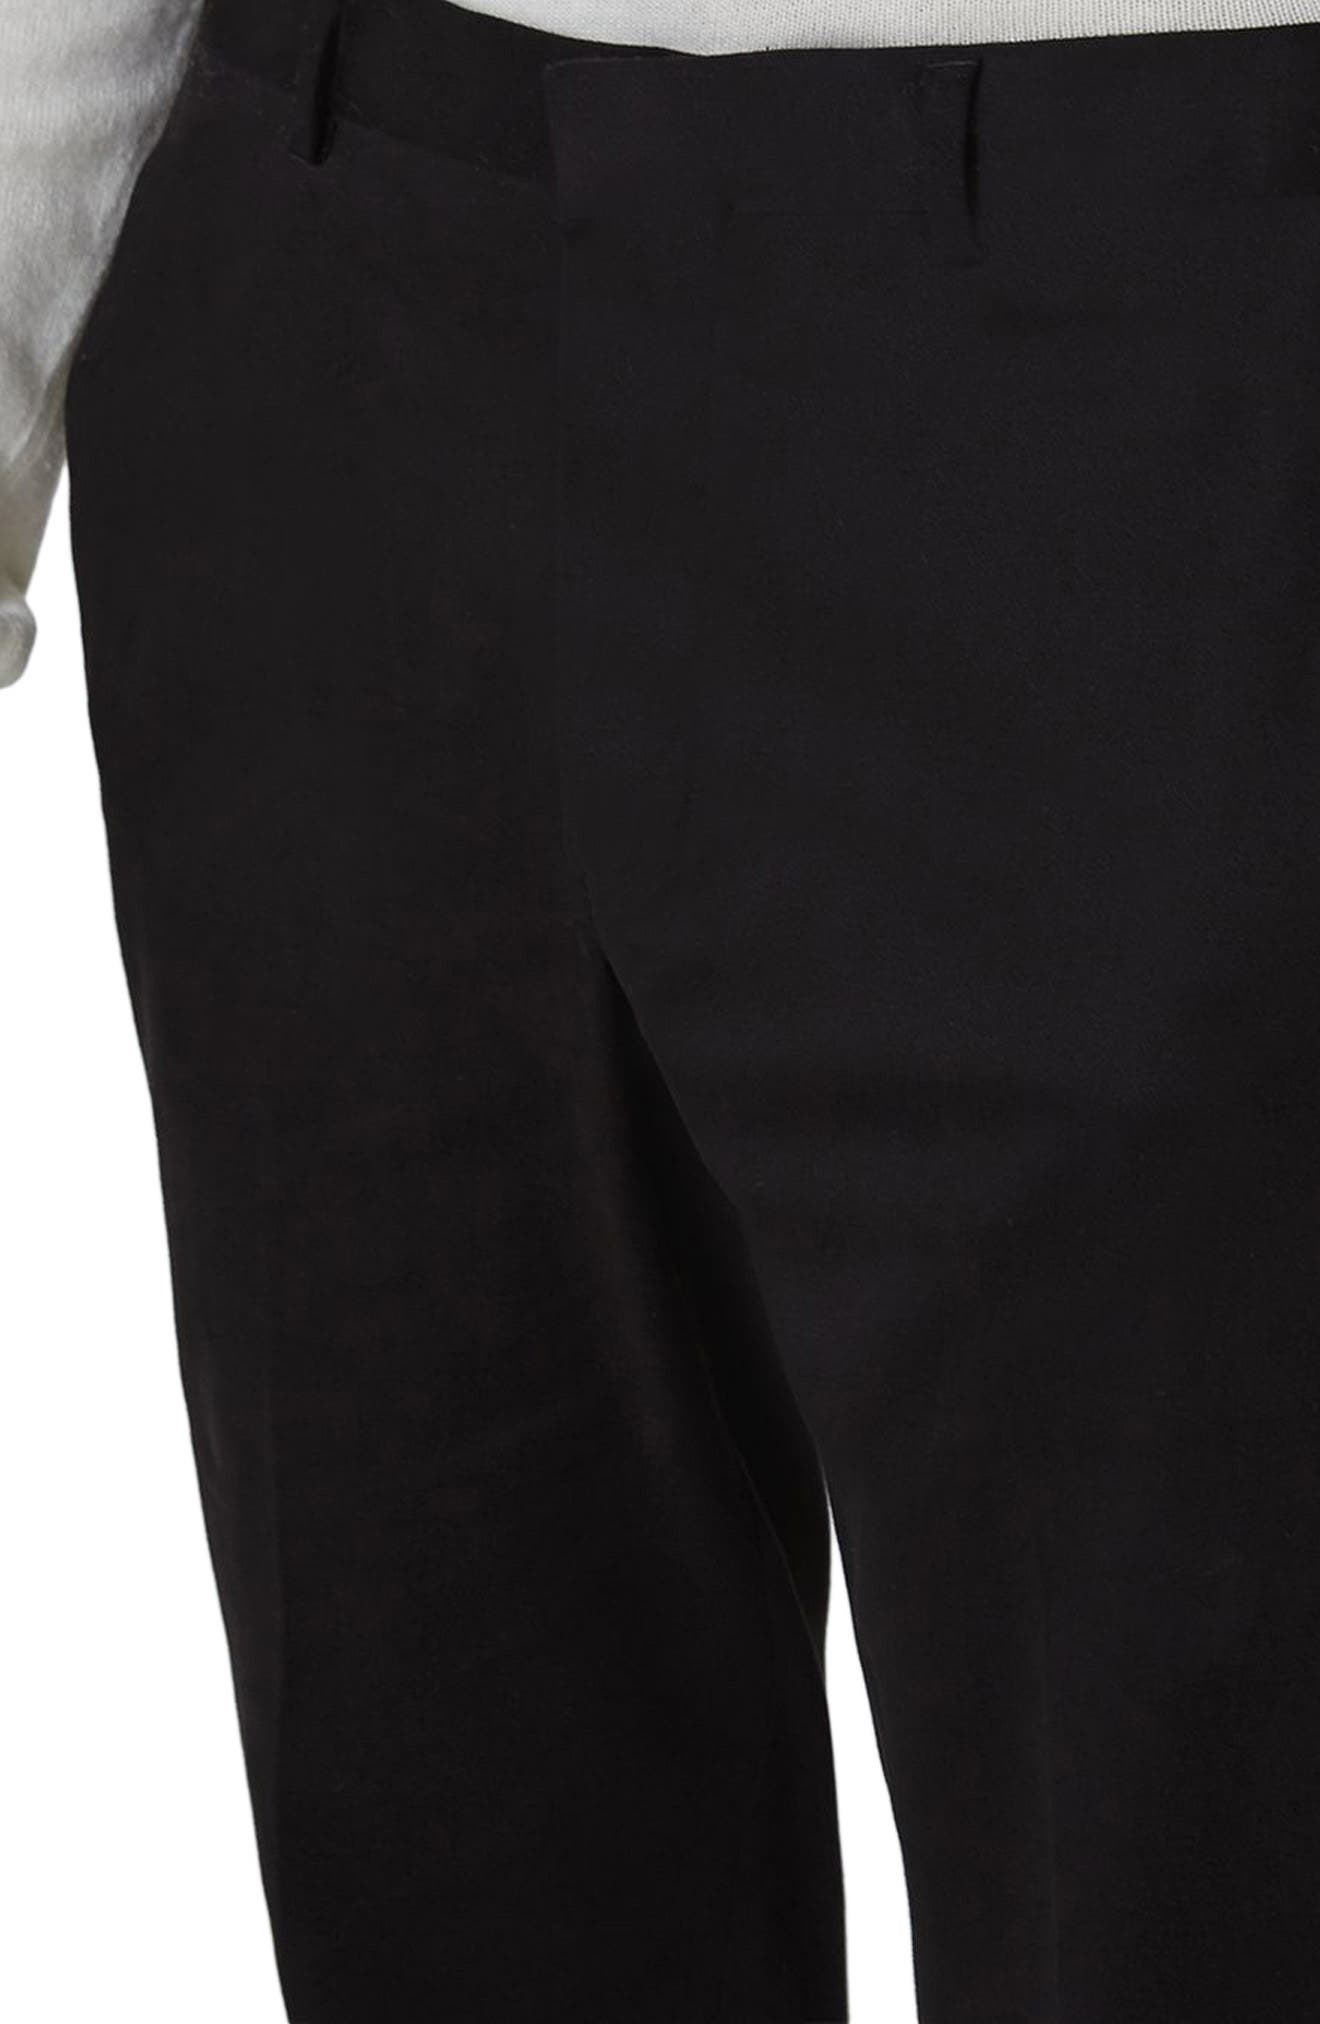 Twill Tapered Trousers,                             Alternate thumbnail 5, color,